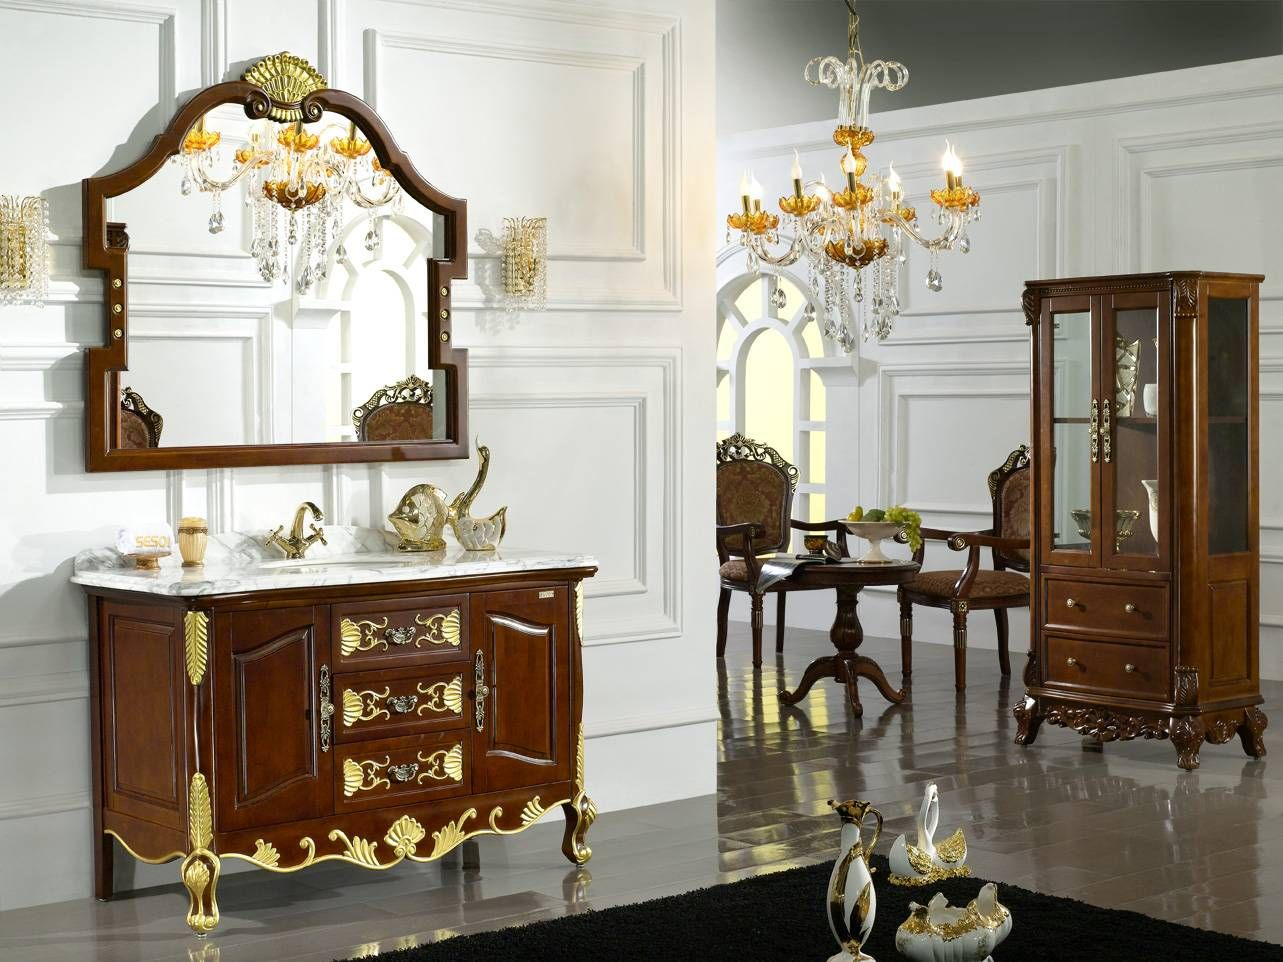 Luxury Bathroom Vanity Units Gilded Mirror Bathroom Vanity Gold Plated Luxury